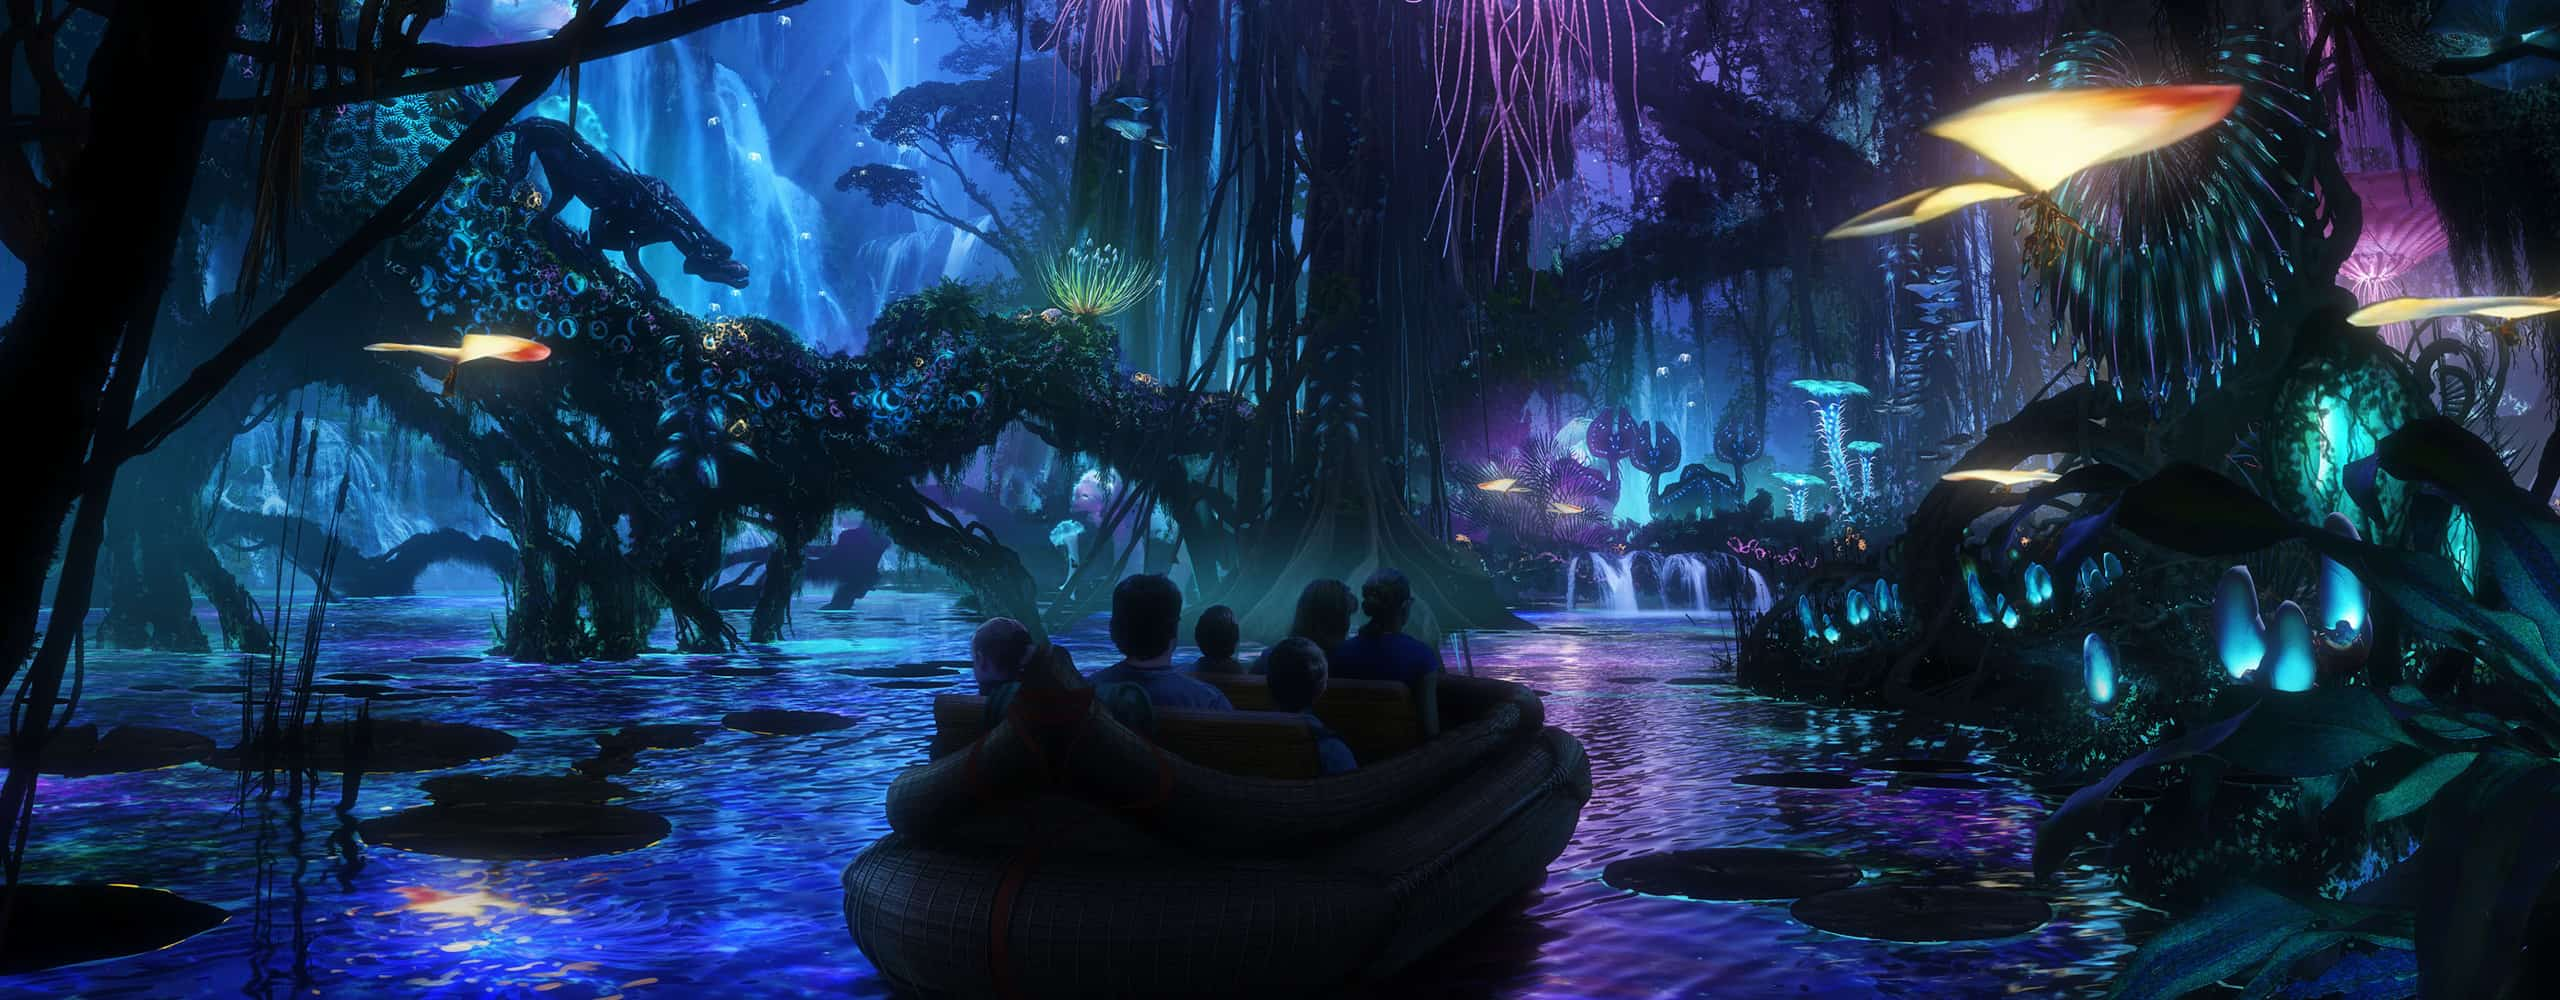 World Of Avatar, Disney's Animal Kingdom